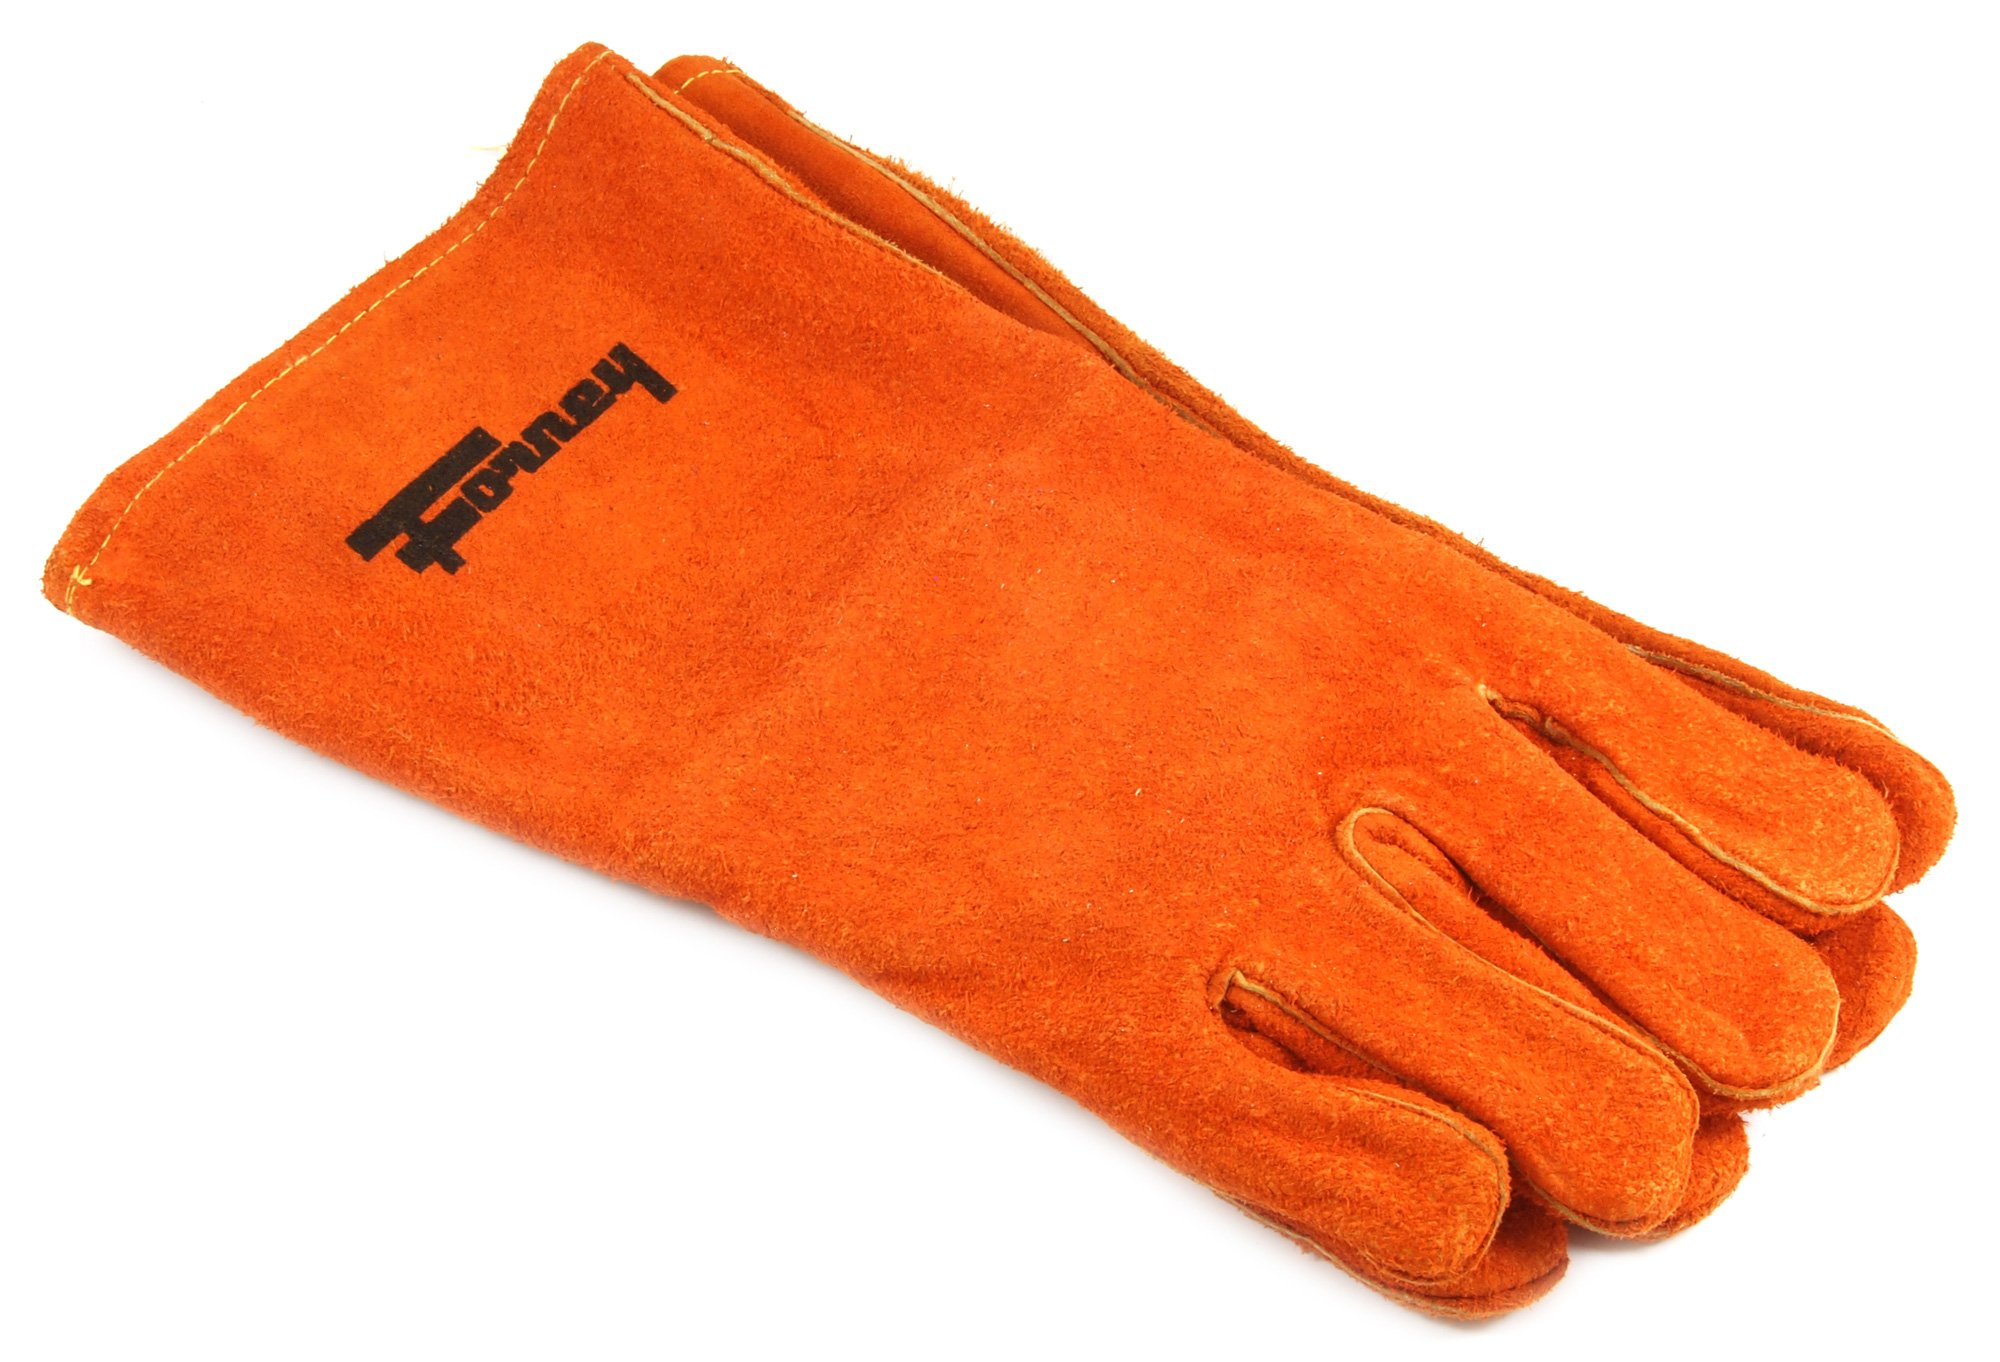 Forney 55206 Welding Glove, Large, Brown Leather